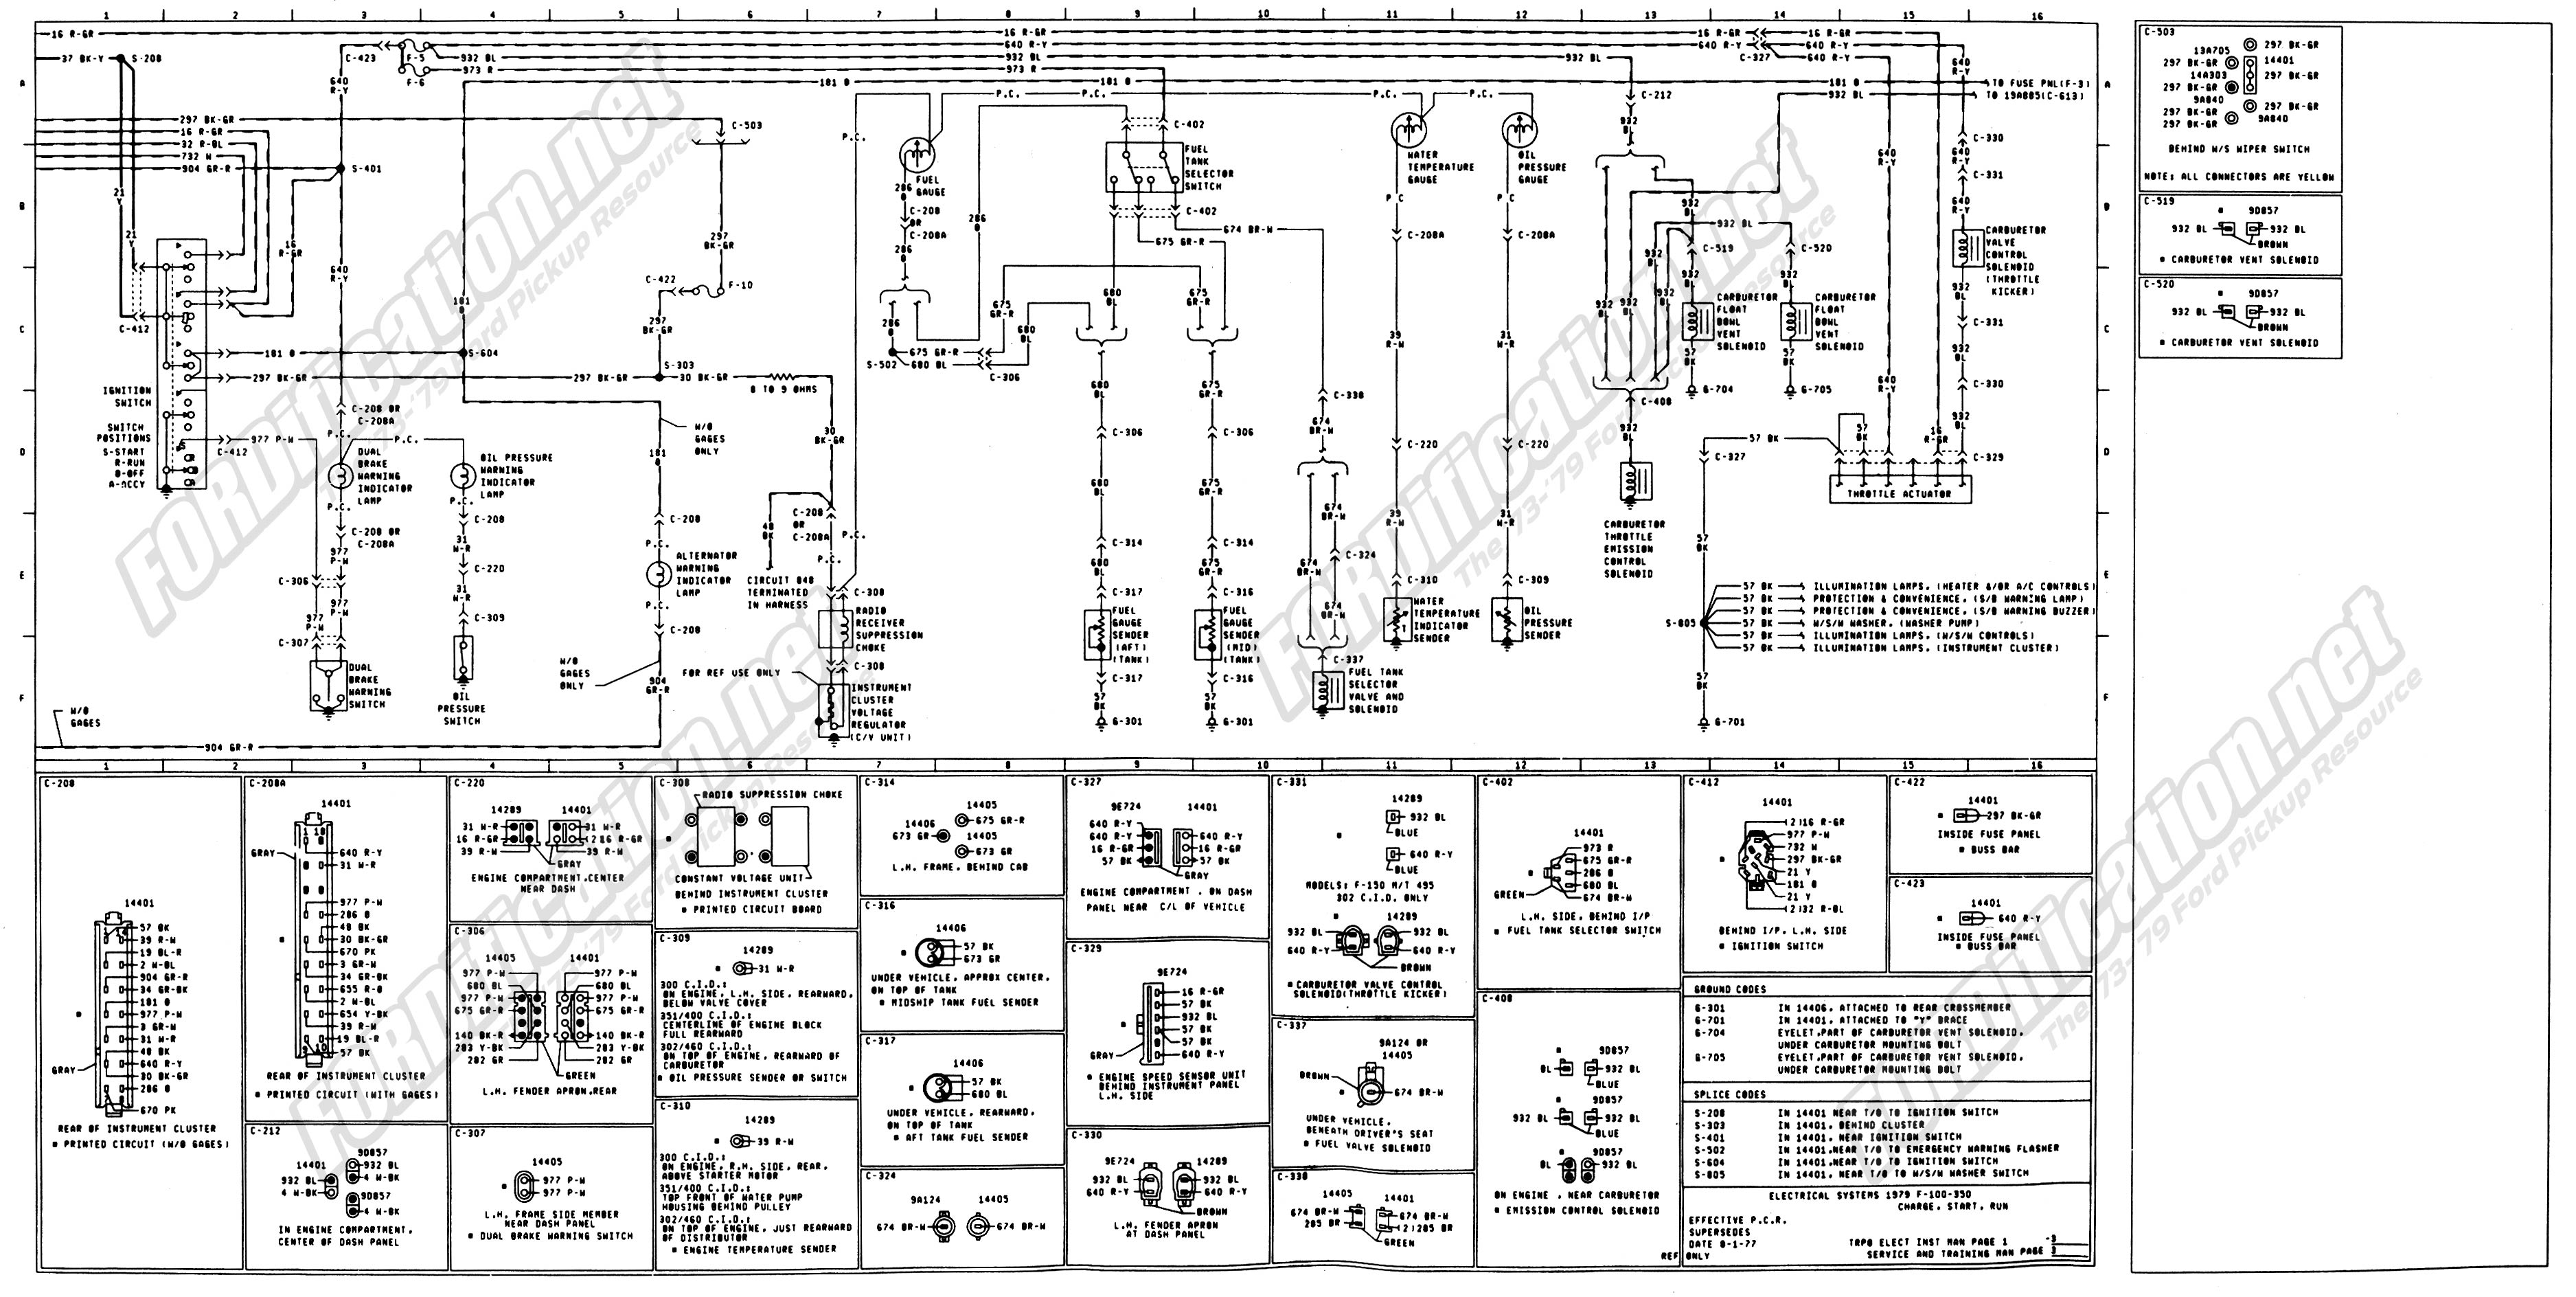 2004 Ford F250 Vacuum Diagram moreover Diagram For 08 Ford F 450 Fuse Box additionally 399476 Headlight Switch Wiring Diagram 2002 F150 together with 961502 Wiring Diagram Schamatic Help in addition 2014 F350 Lariat Fuse Panel. on 1997 ford super duty wiring diagram